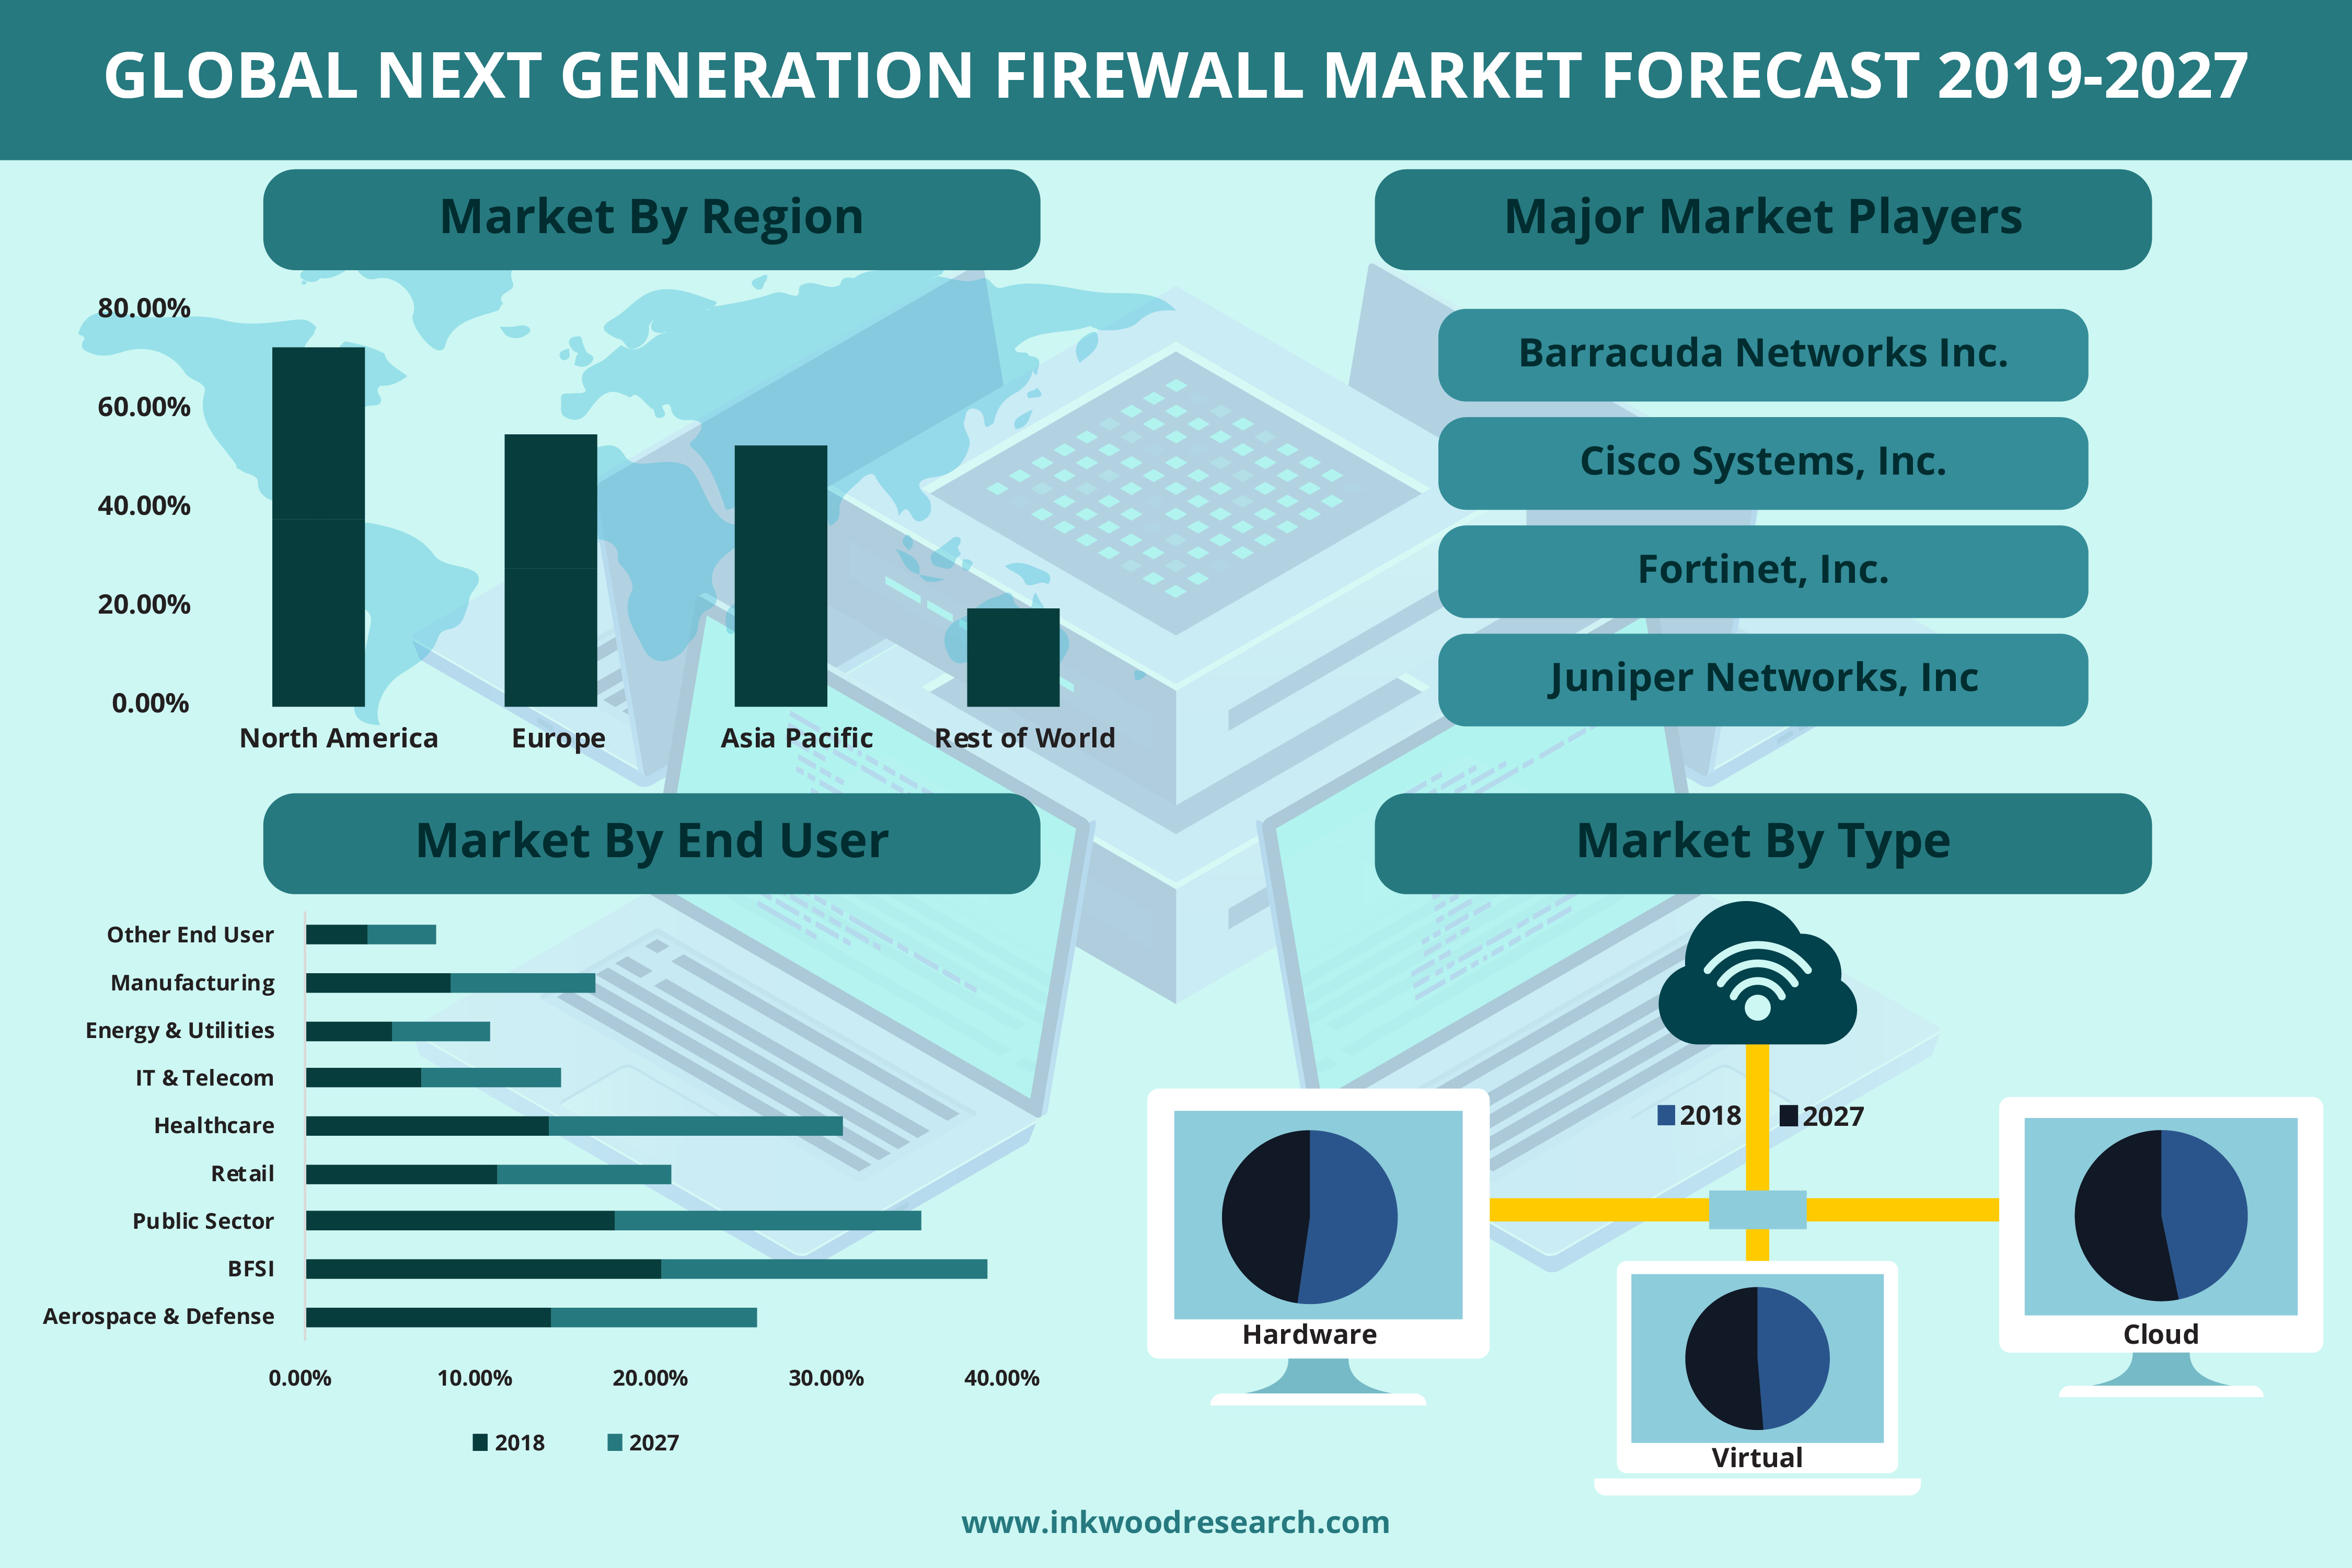 Change in Business Environment is escalating the growth of the Global Next Generation Firewall Market